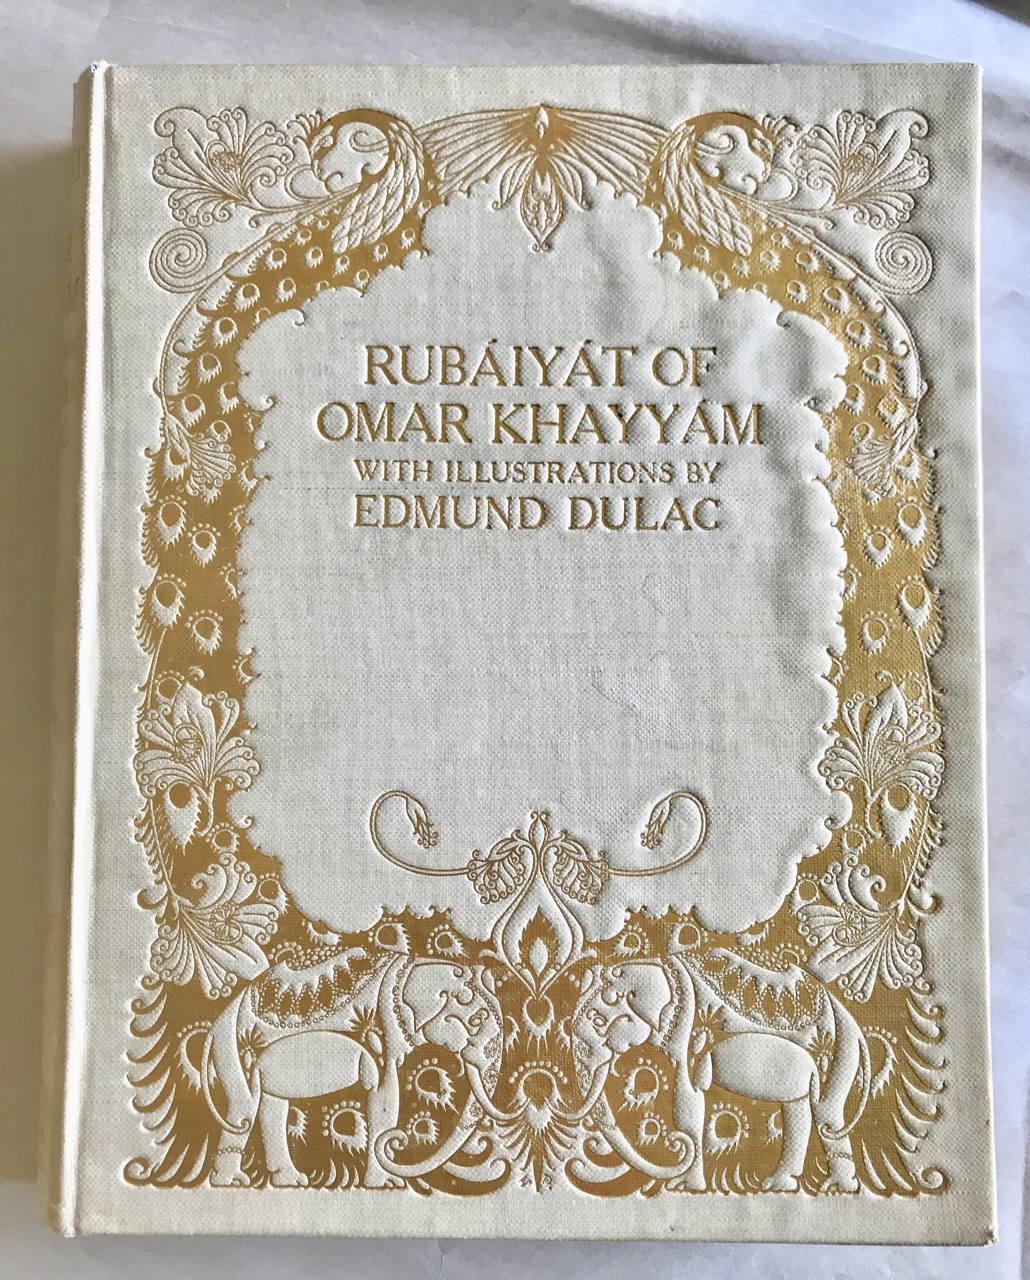 Image for The Rubaiyat of Omar Khayyam. Translated into English Verse by Edward Fitzgerald. With Illustrations by Edmund Dulac.